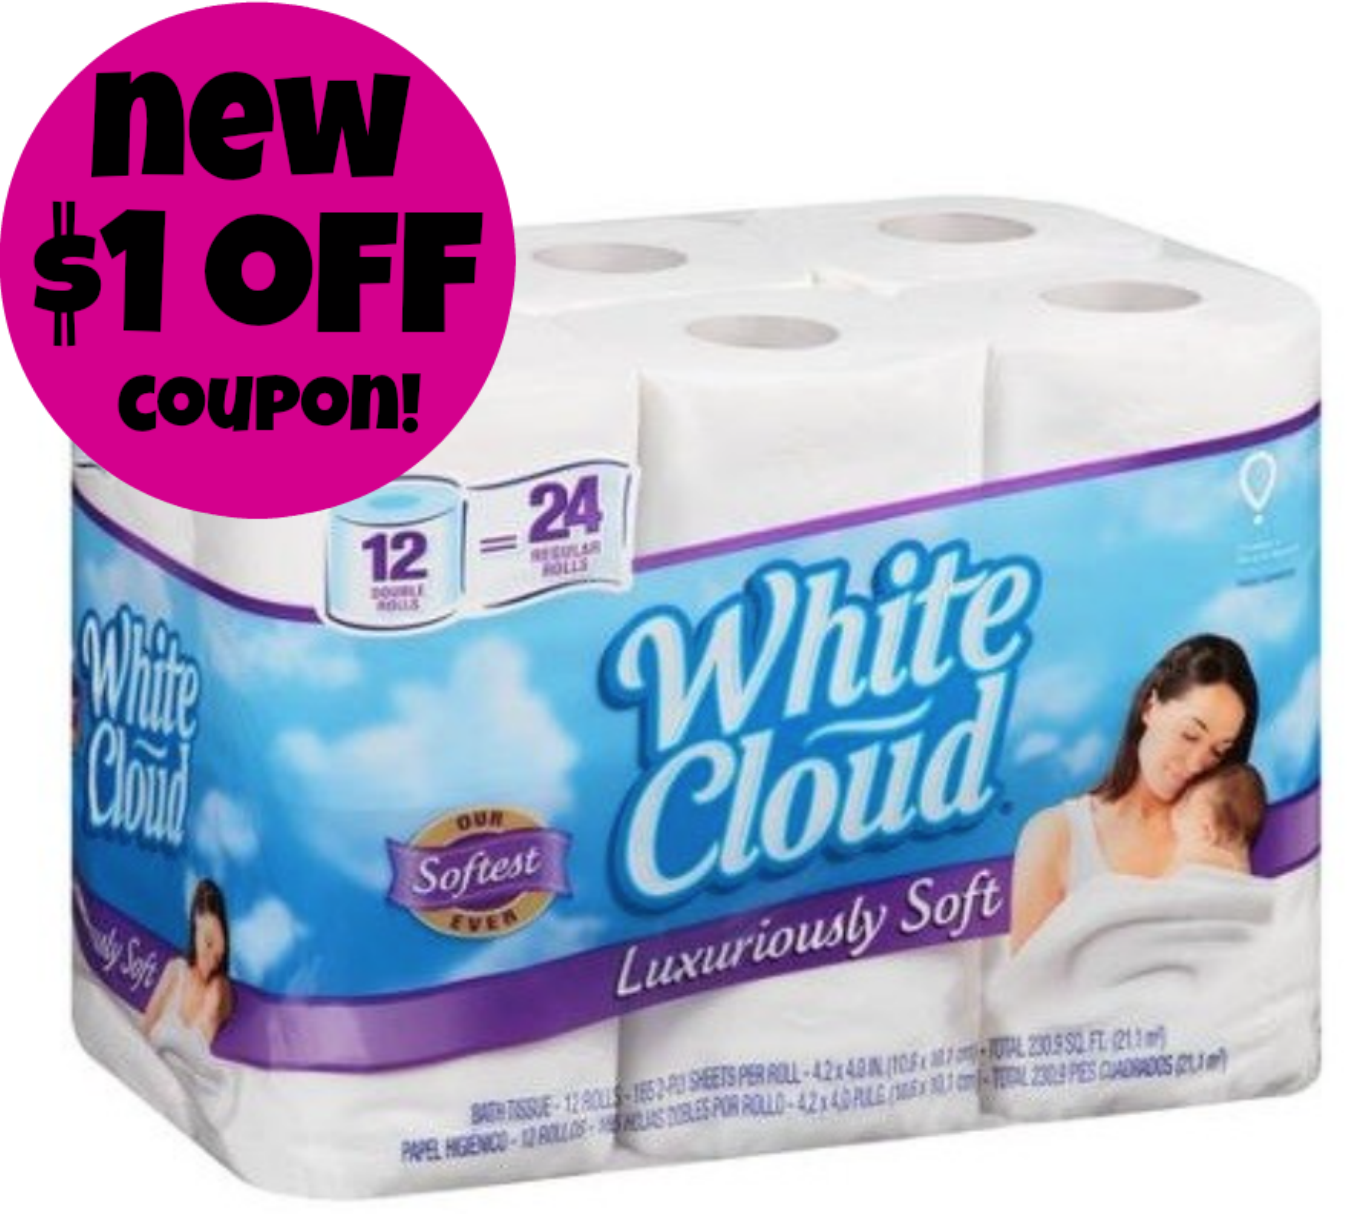 White Cloud New 1 off Bathroom Tissue Coupon Walmart Scenario. Bathroom Tissue Coupons